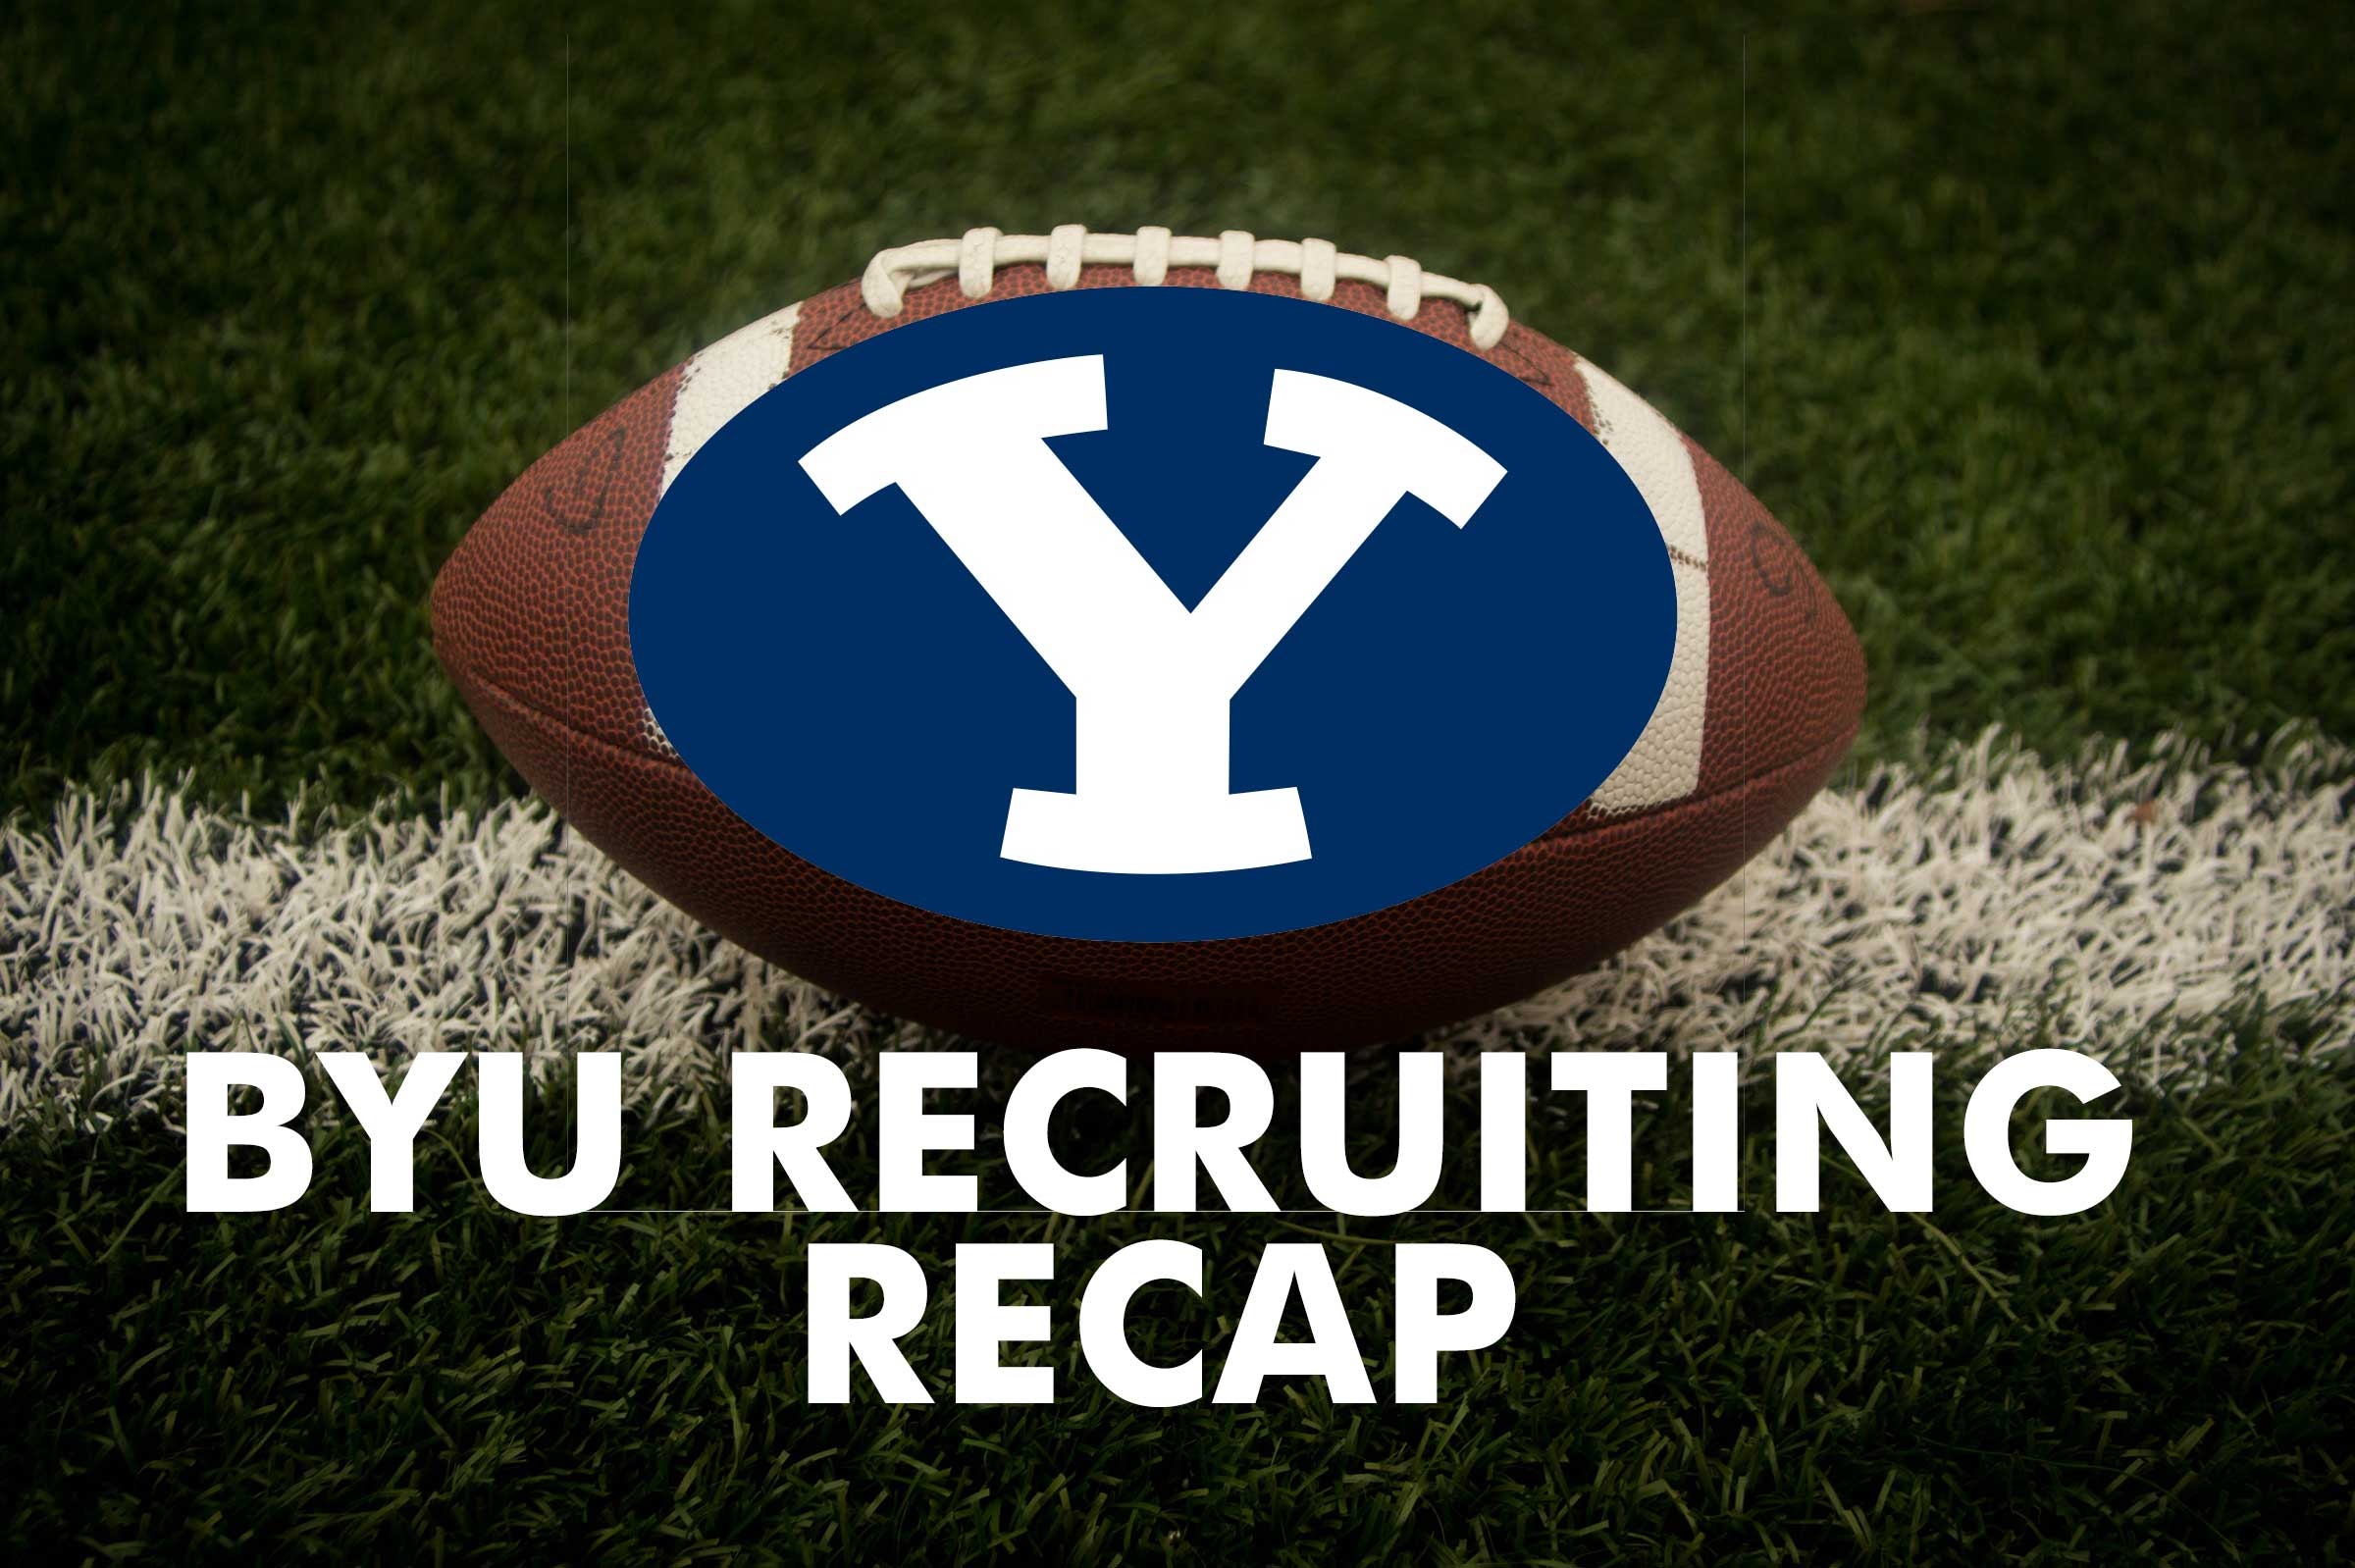 Recruiting Recap: BYU Football offers Scholarships to Athletes from Califonia, Utah, Hawaii, and Arizona